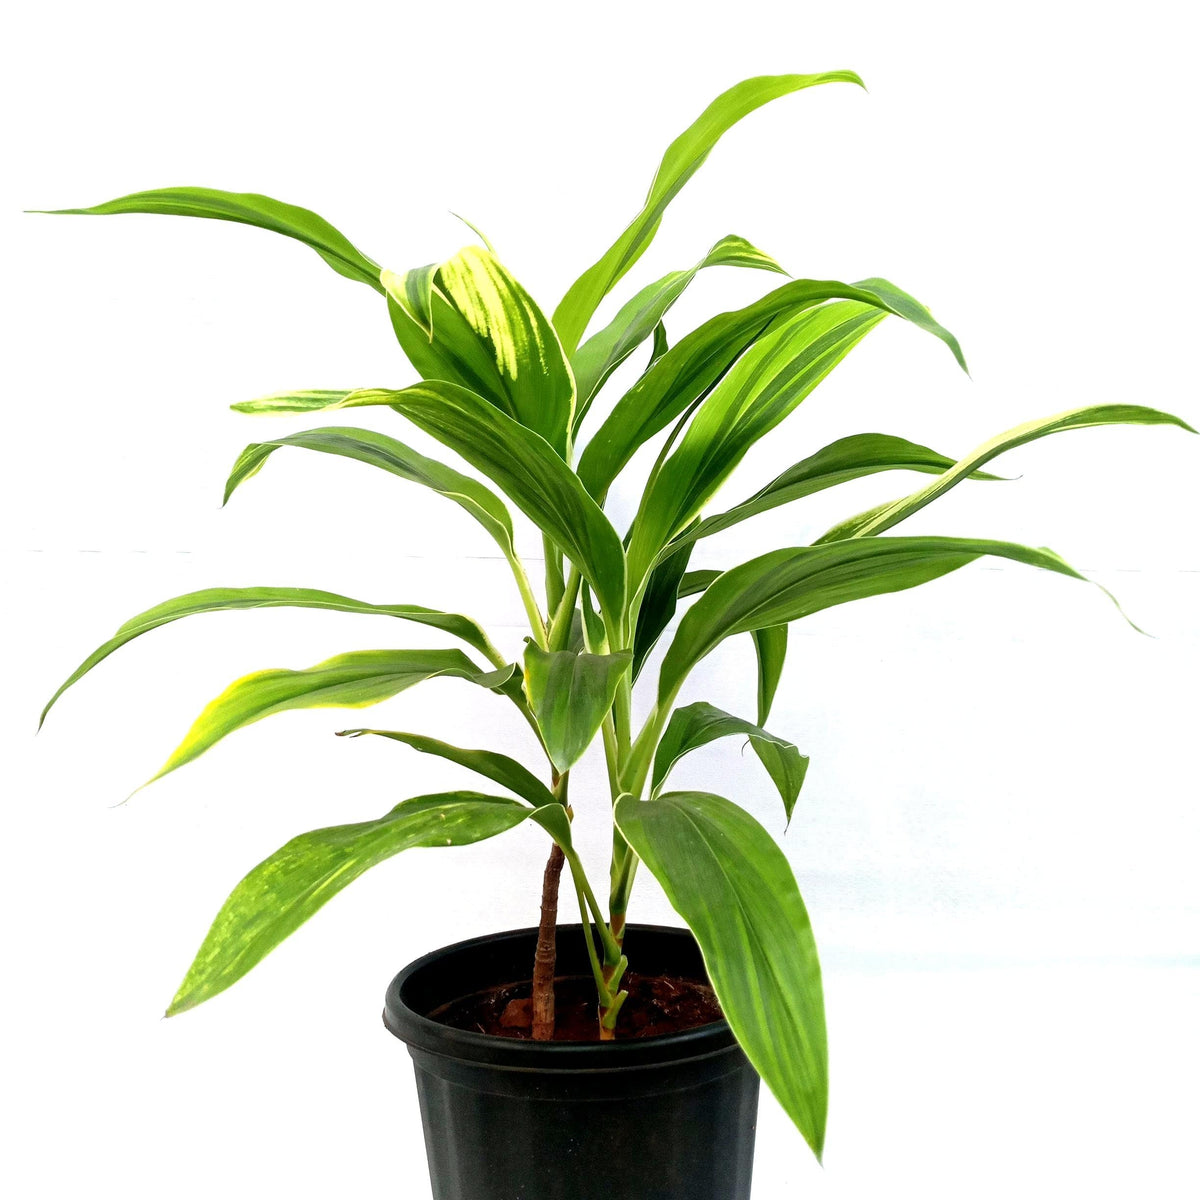 Cordyline fruticosa'Lemon & lime' - 10'' pot size